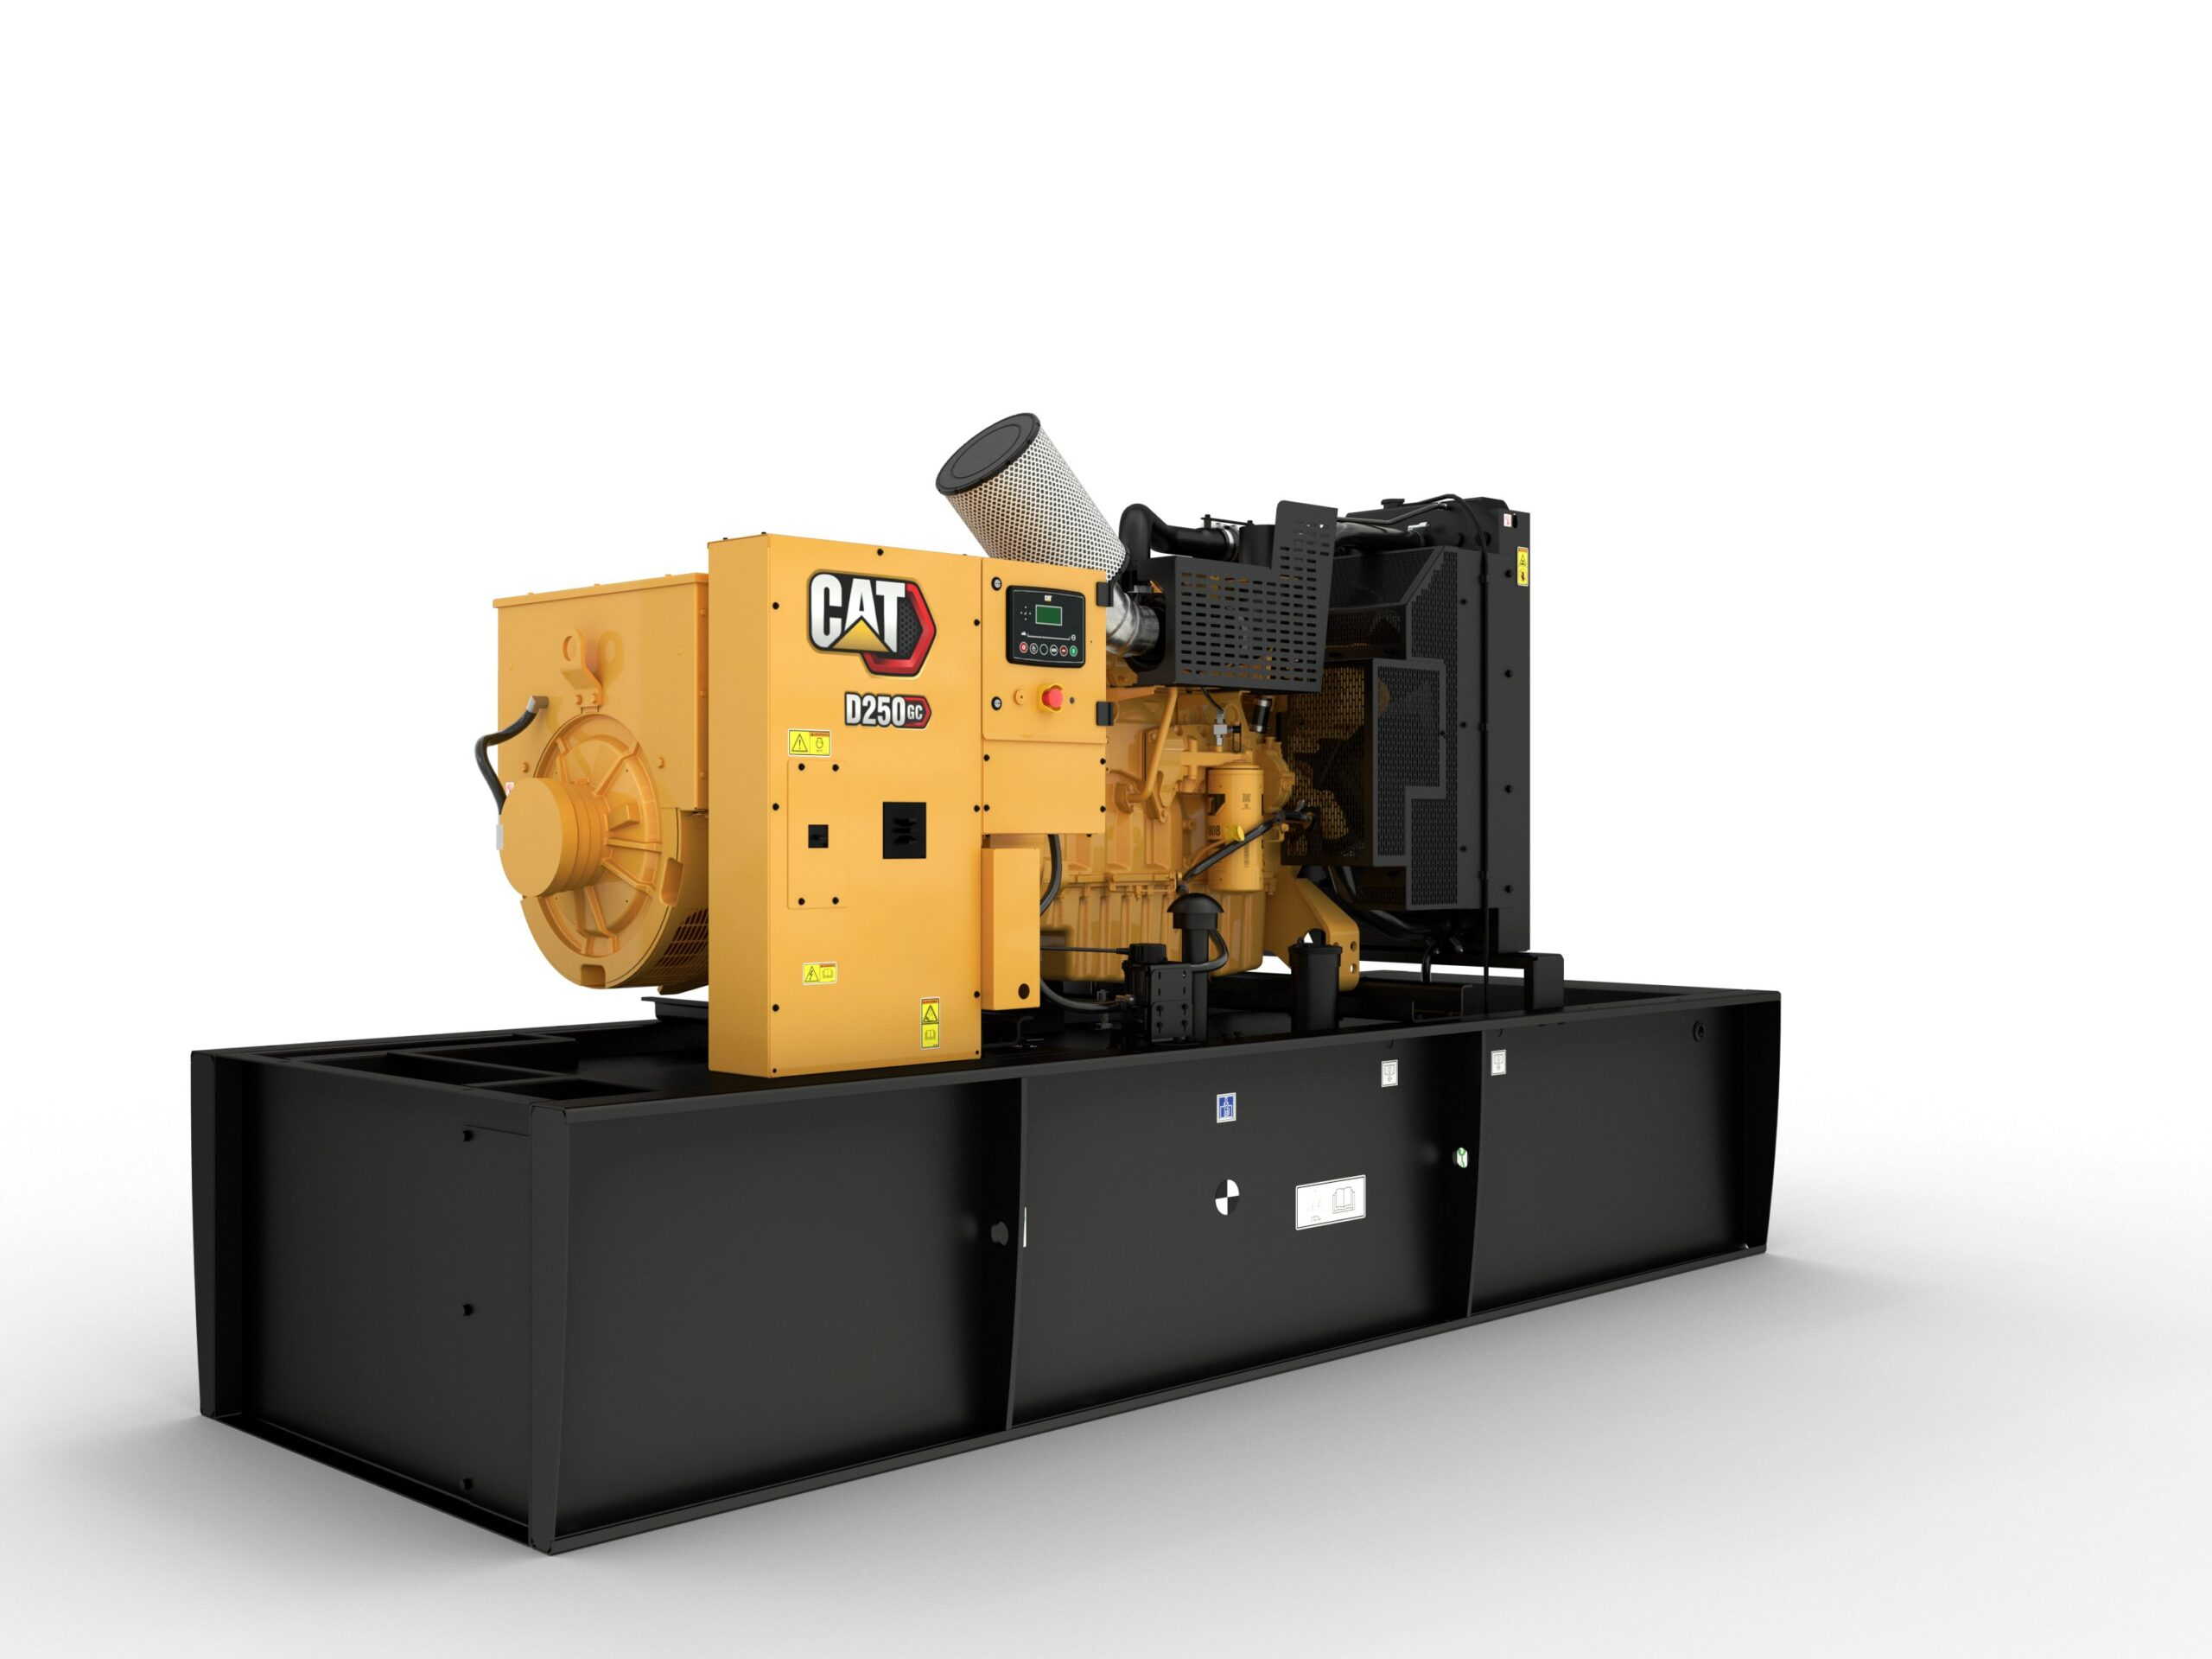 Caterpillar Expands Line of Diesel Generators for Small Businesses